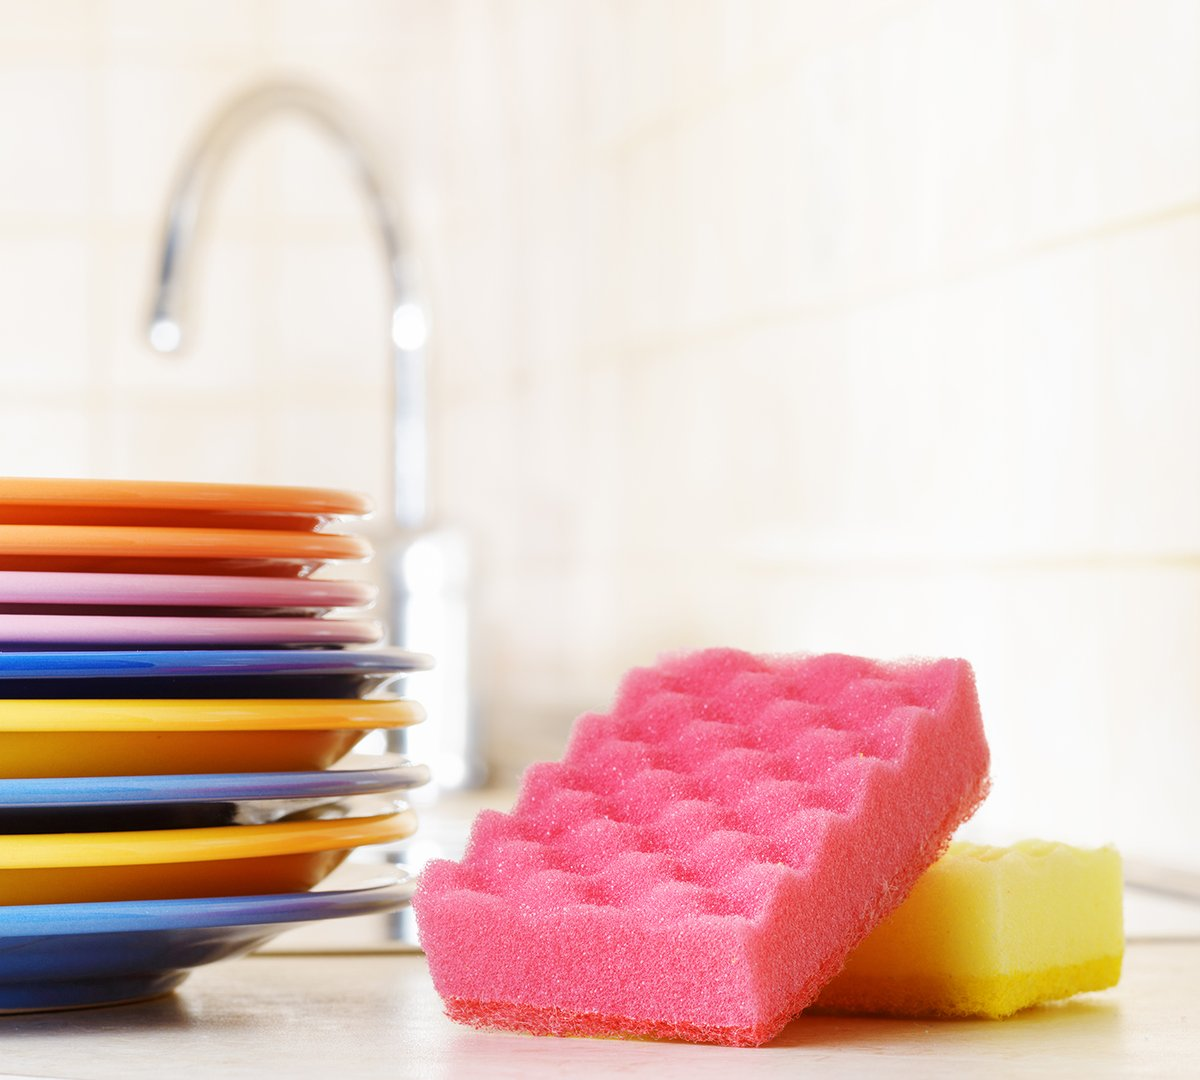 Here's how to use a microwave to disinfect a #kitchen sponge. #cleaninghacks  http://cpix.me/a/97934062pic.twitter.com/Ylsf5CRg4u